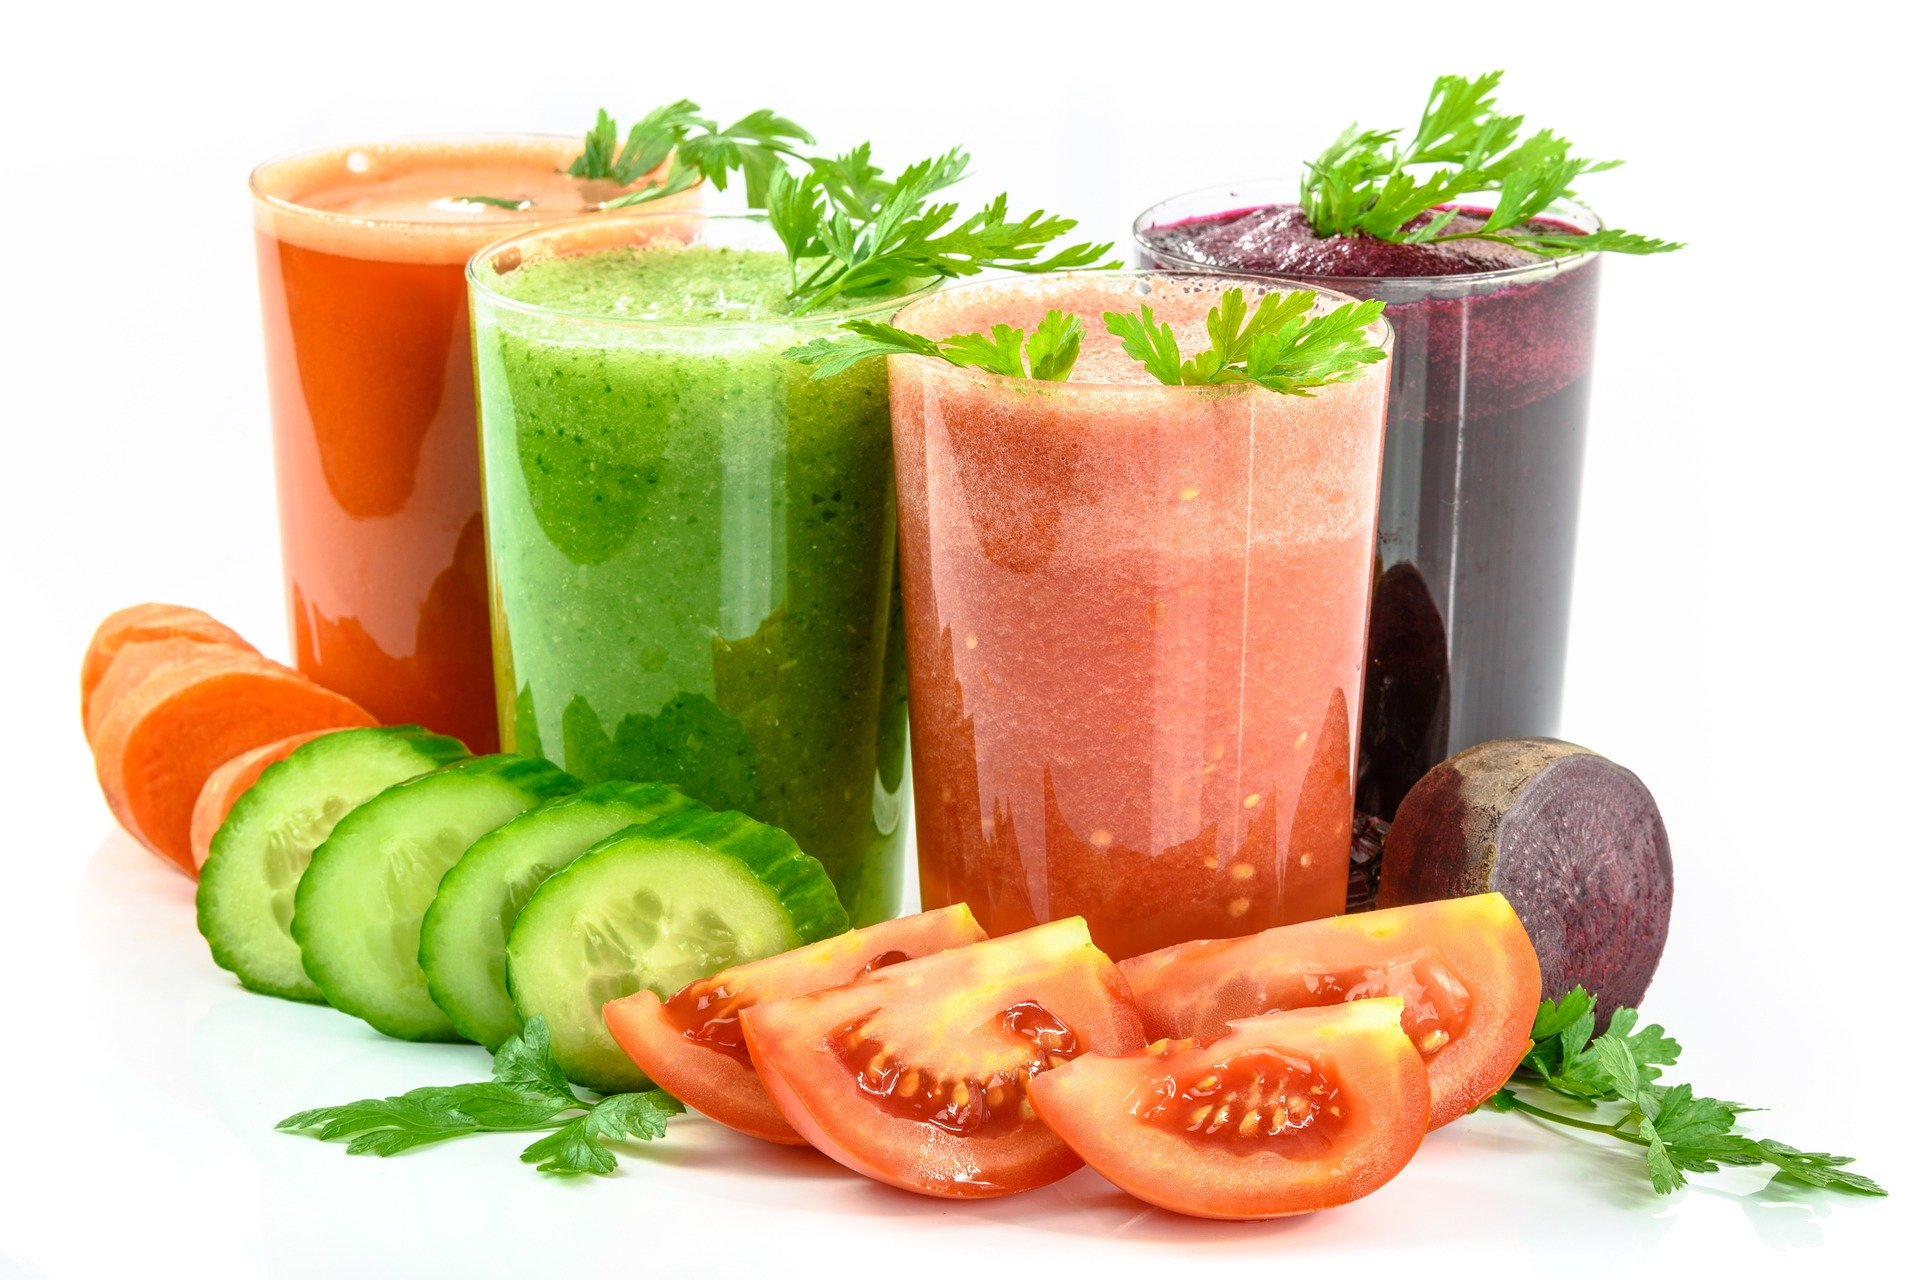 We don't need to starve ourselves to lose weight. Juices for weight loss and drinking them daily can bring much better results!